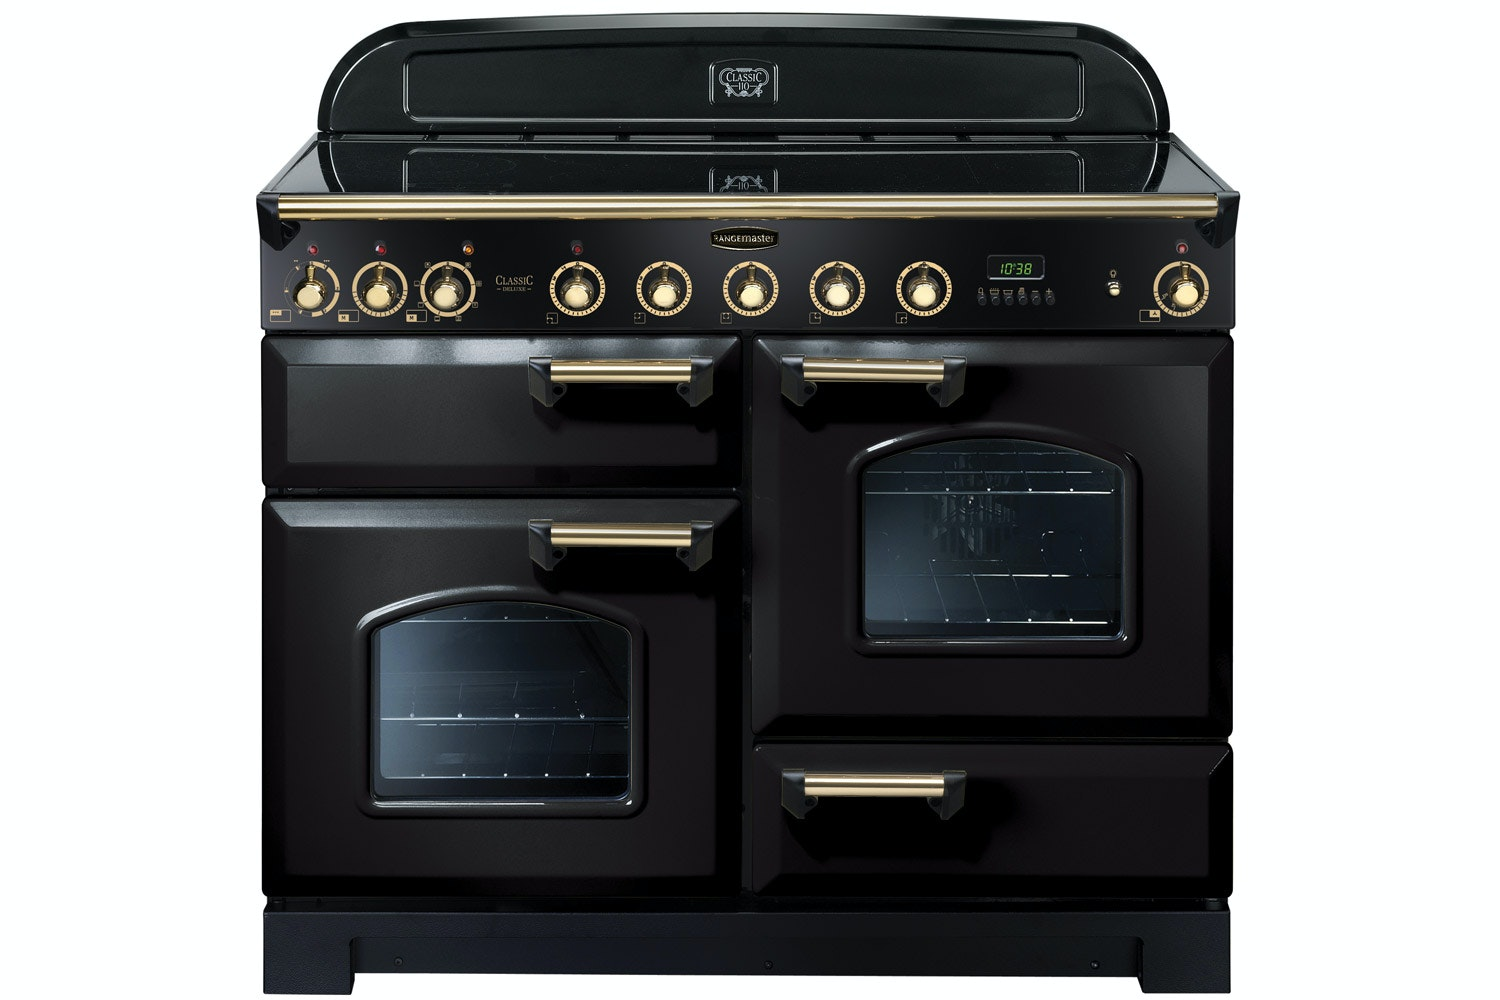 Rangemaster Classic Deluxe 110cm Electric Range Cooker | CDL110EIBL/B | Black